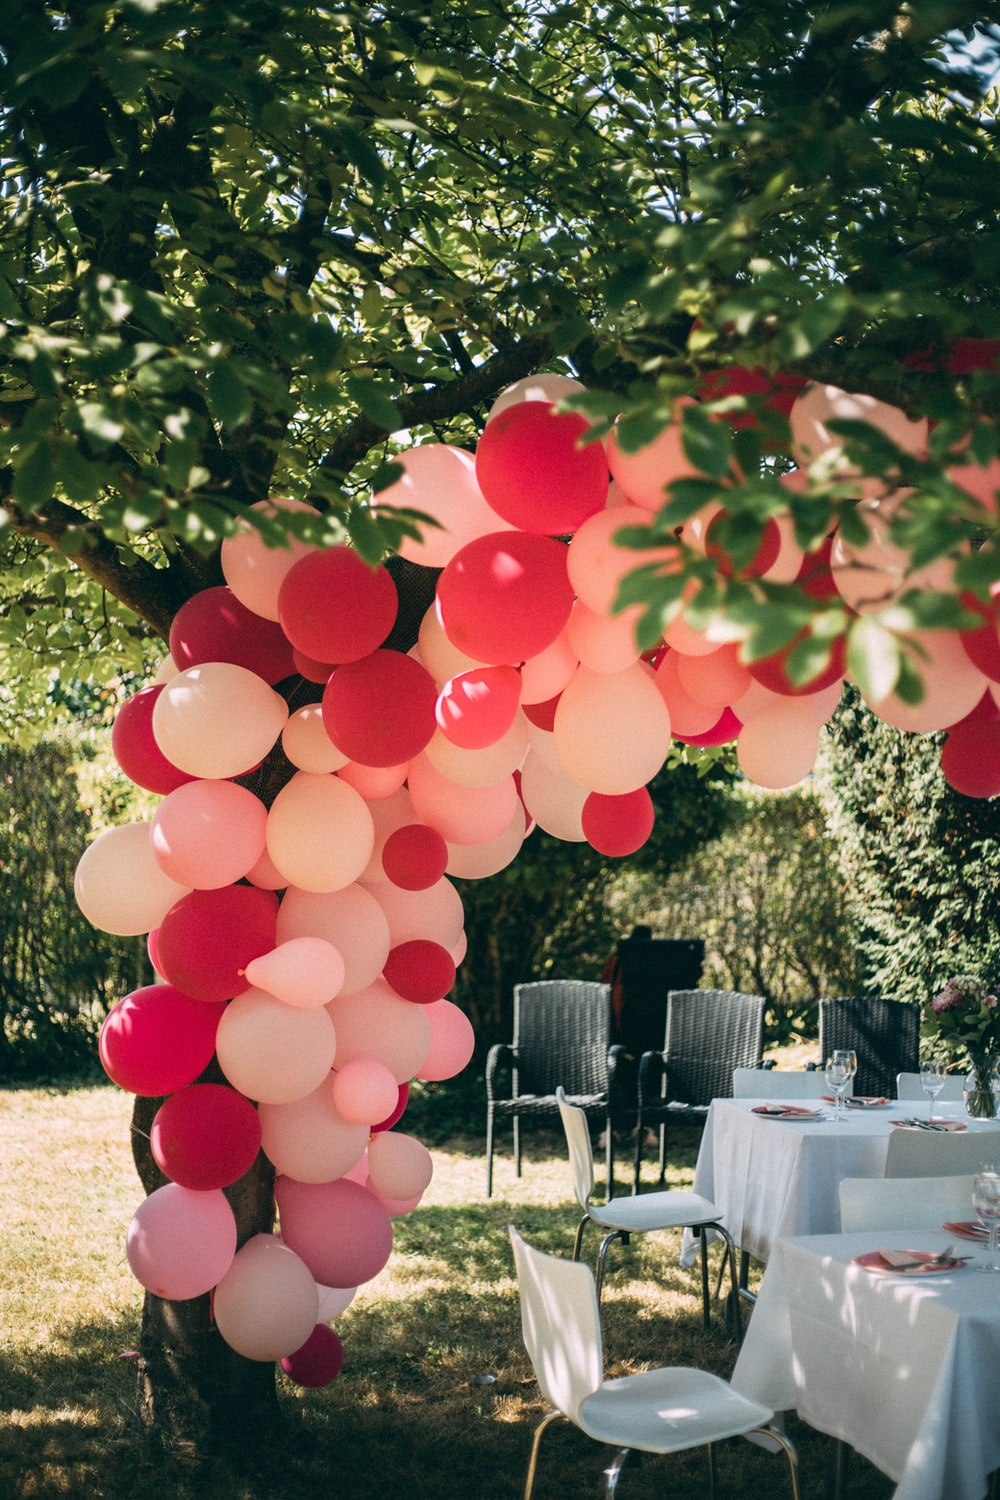 pink and red balloons near green trees during daytime